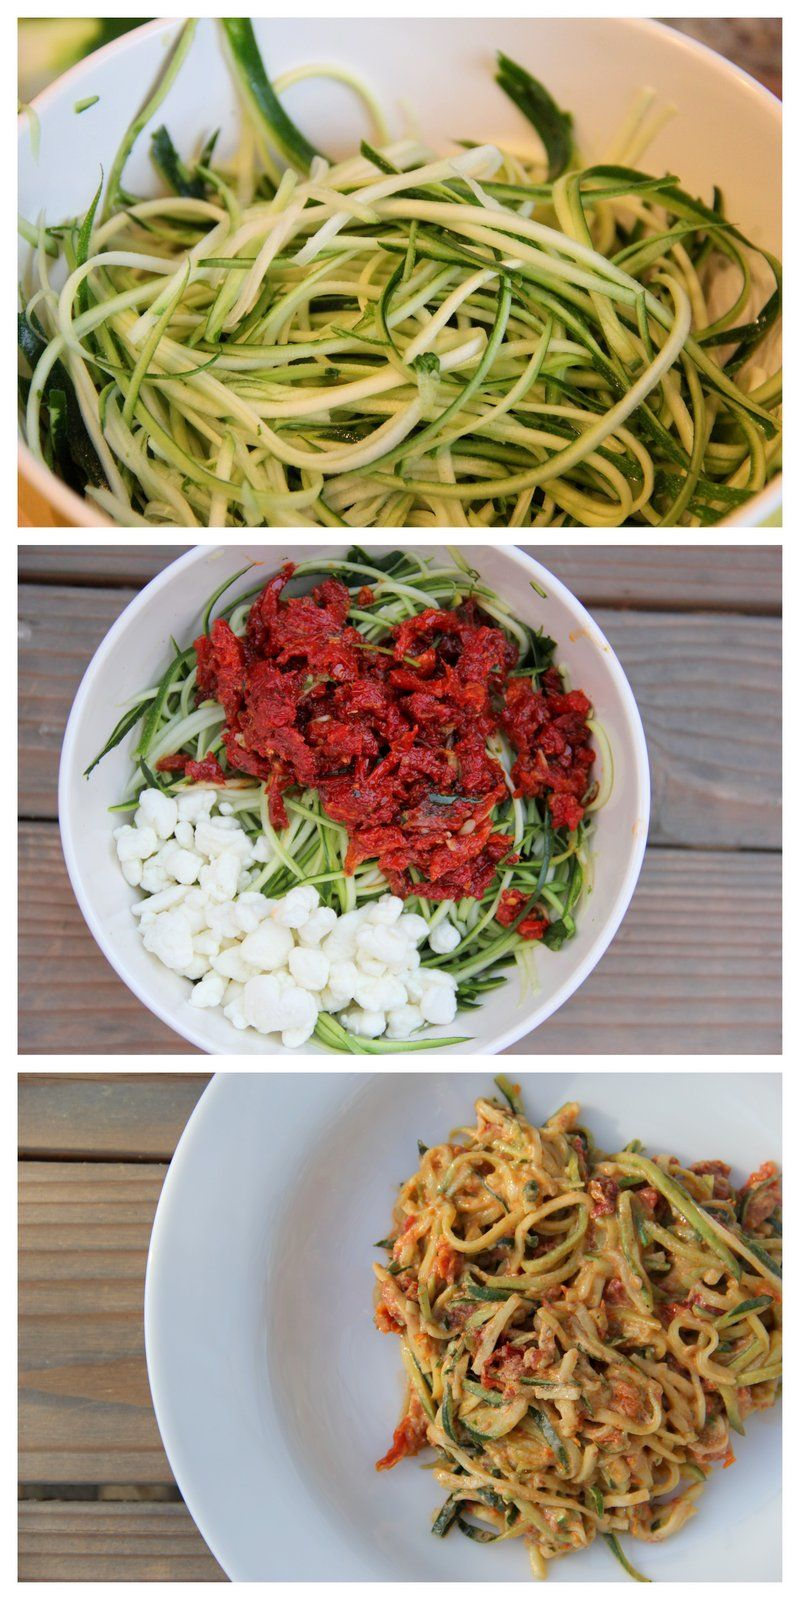 how to cook zucchini like pasta